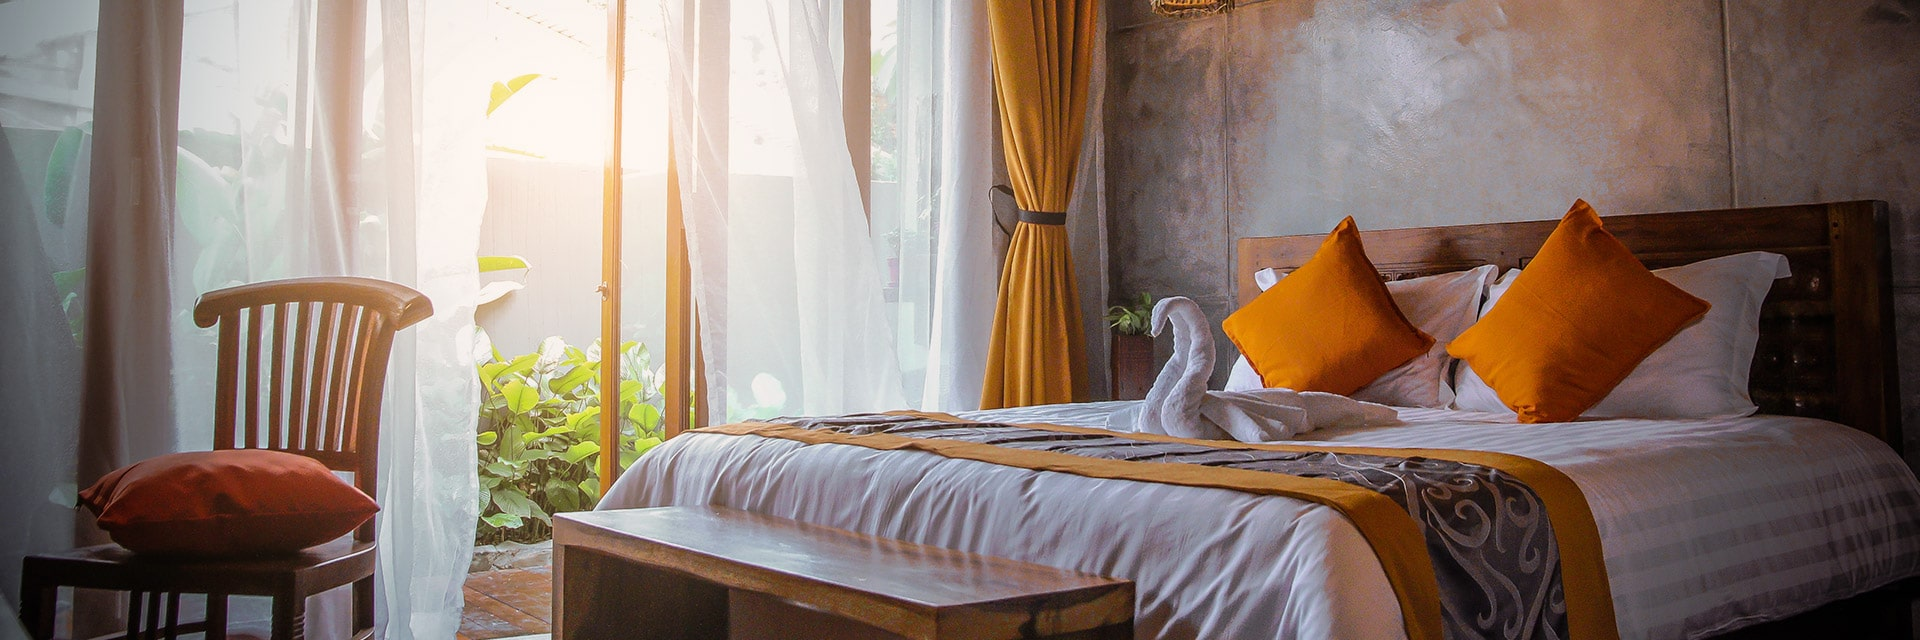 6 Unique Boutique Hotels In Ipoh To Check In To